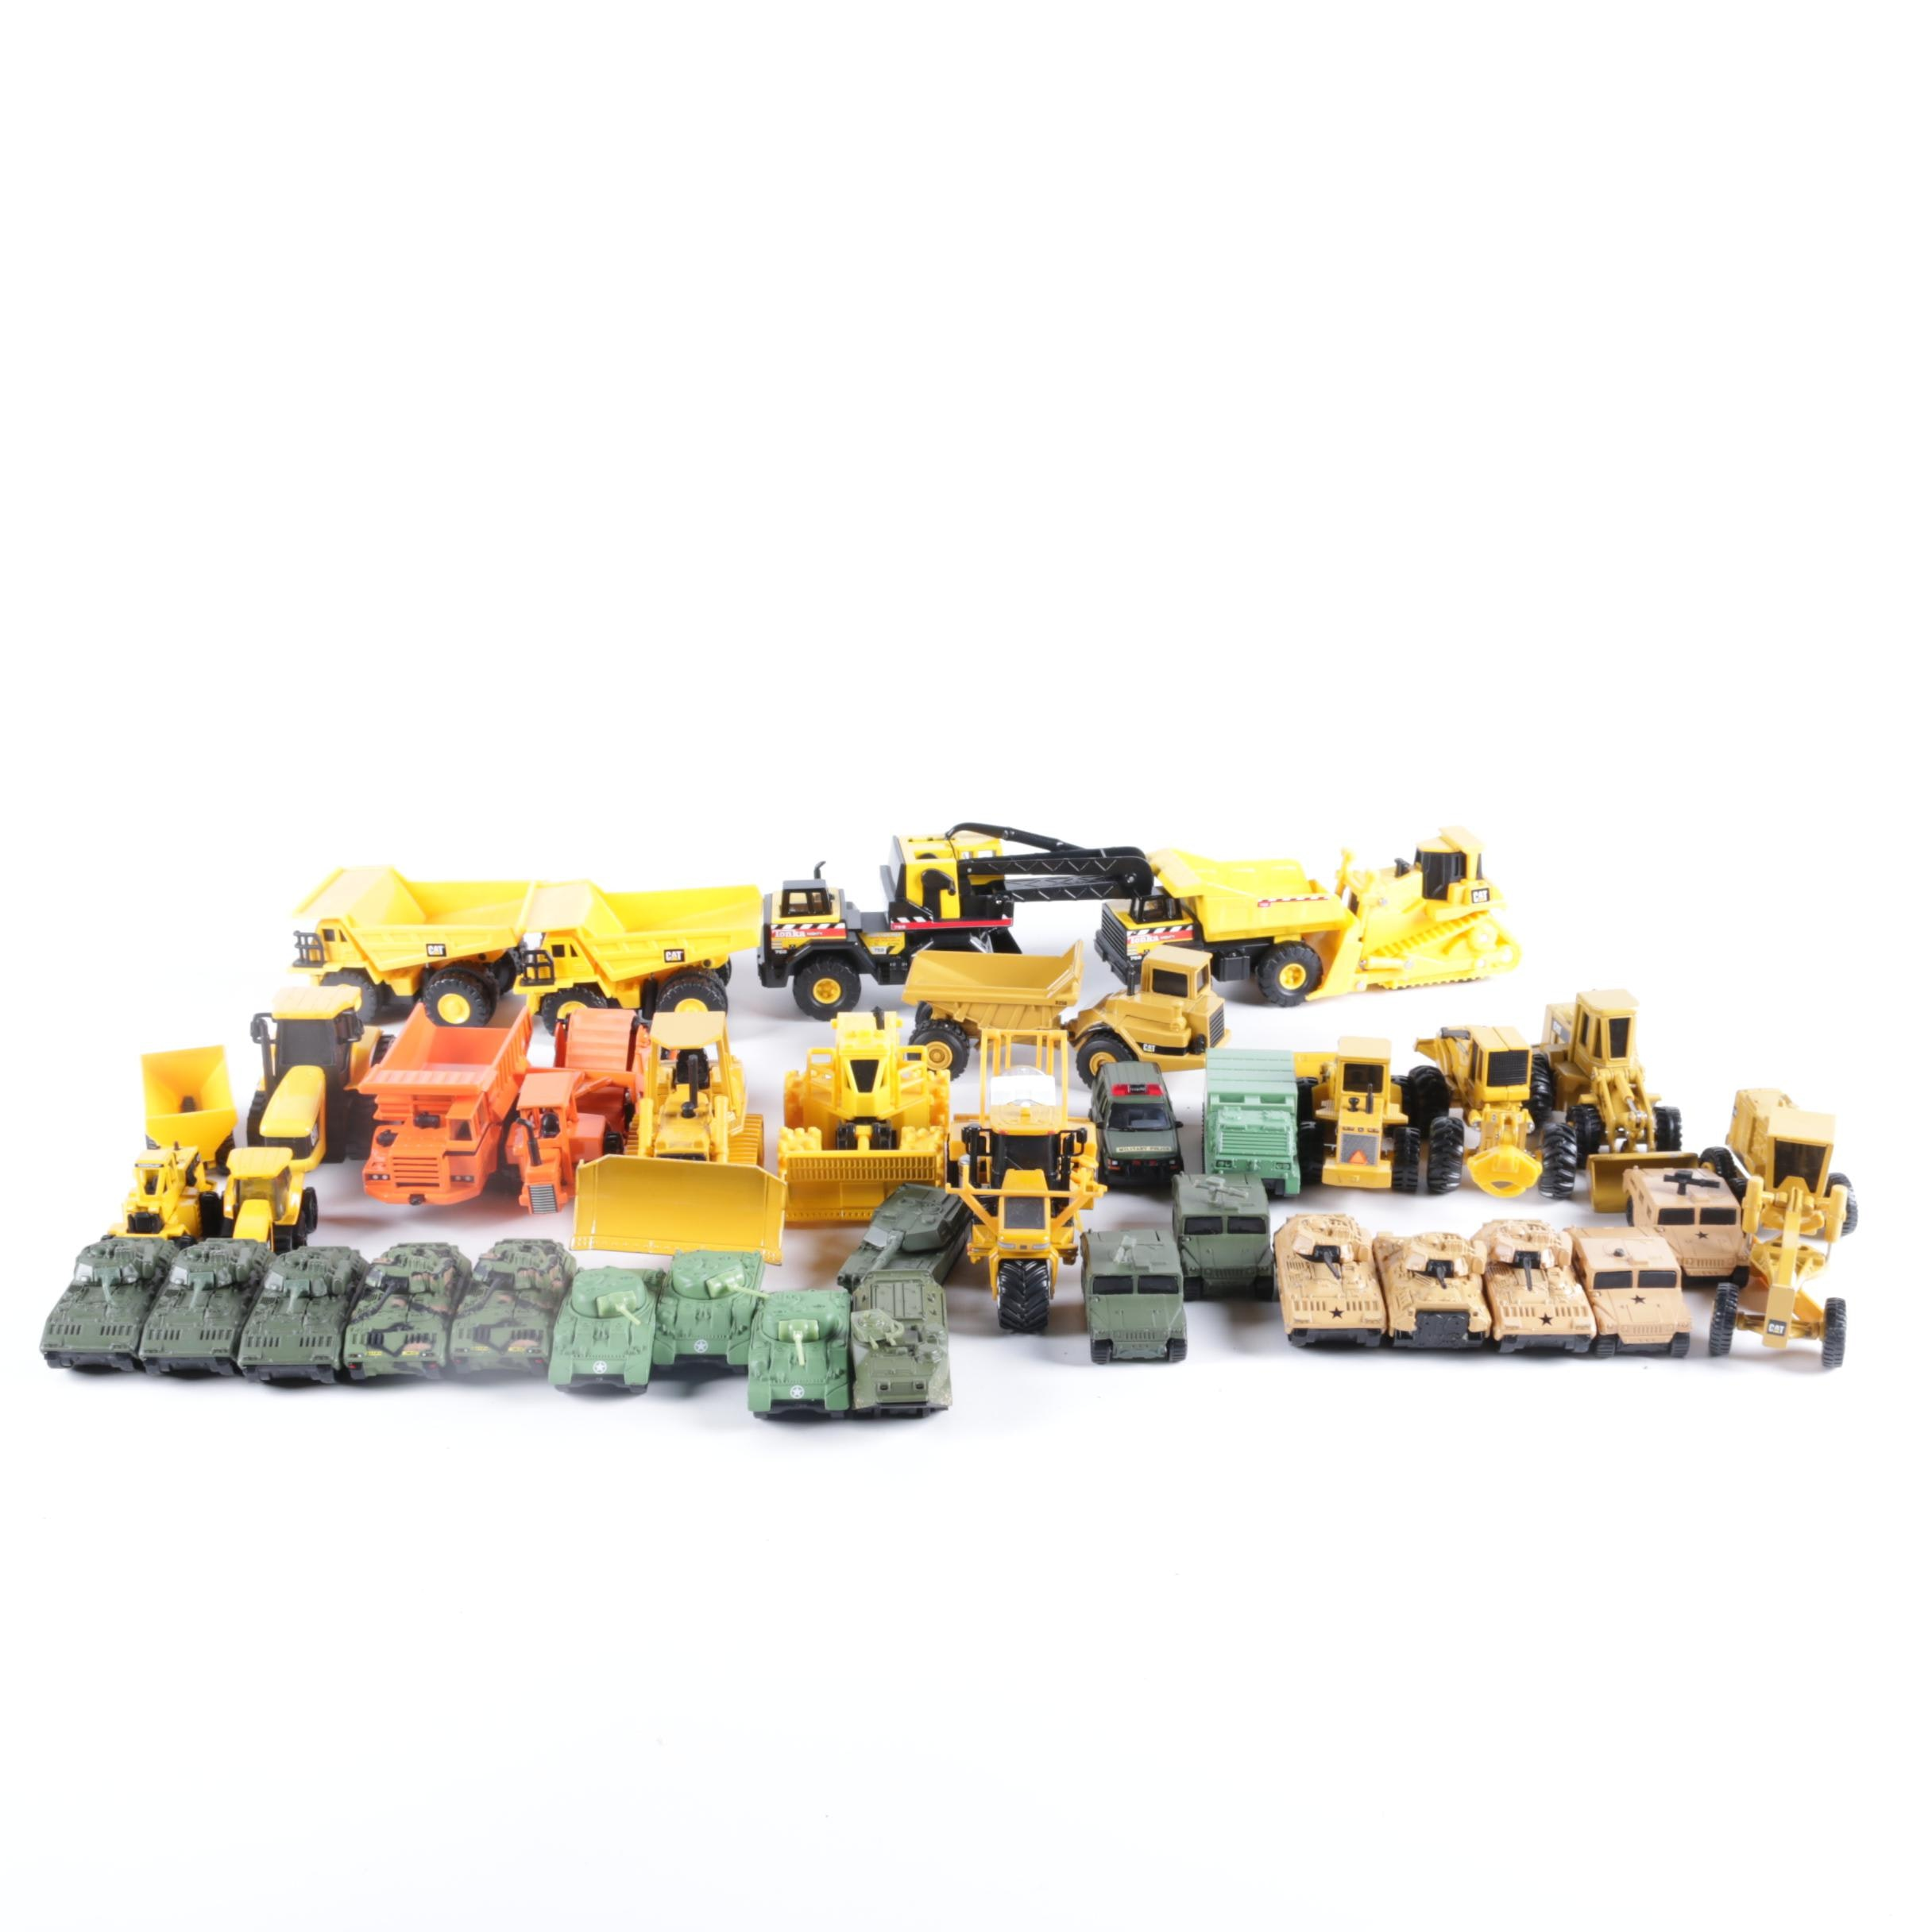 Assortment of Die-Cast Military and Construction Vehicles